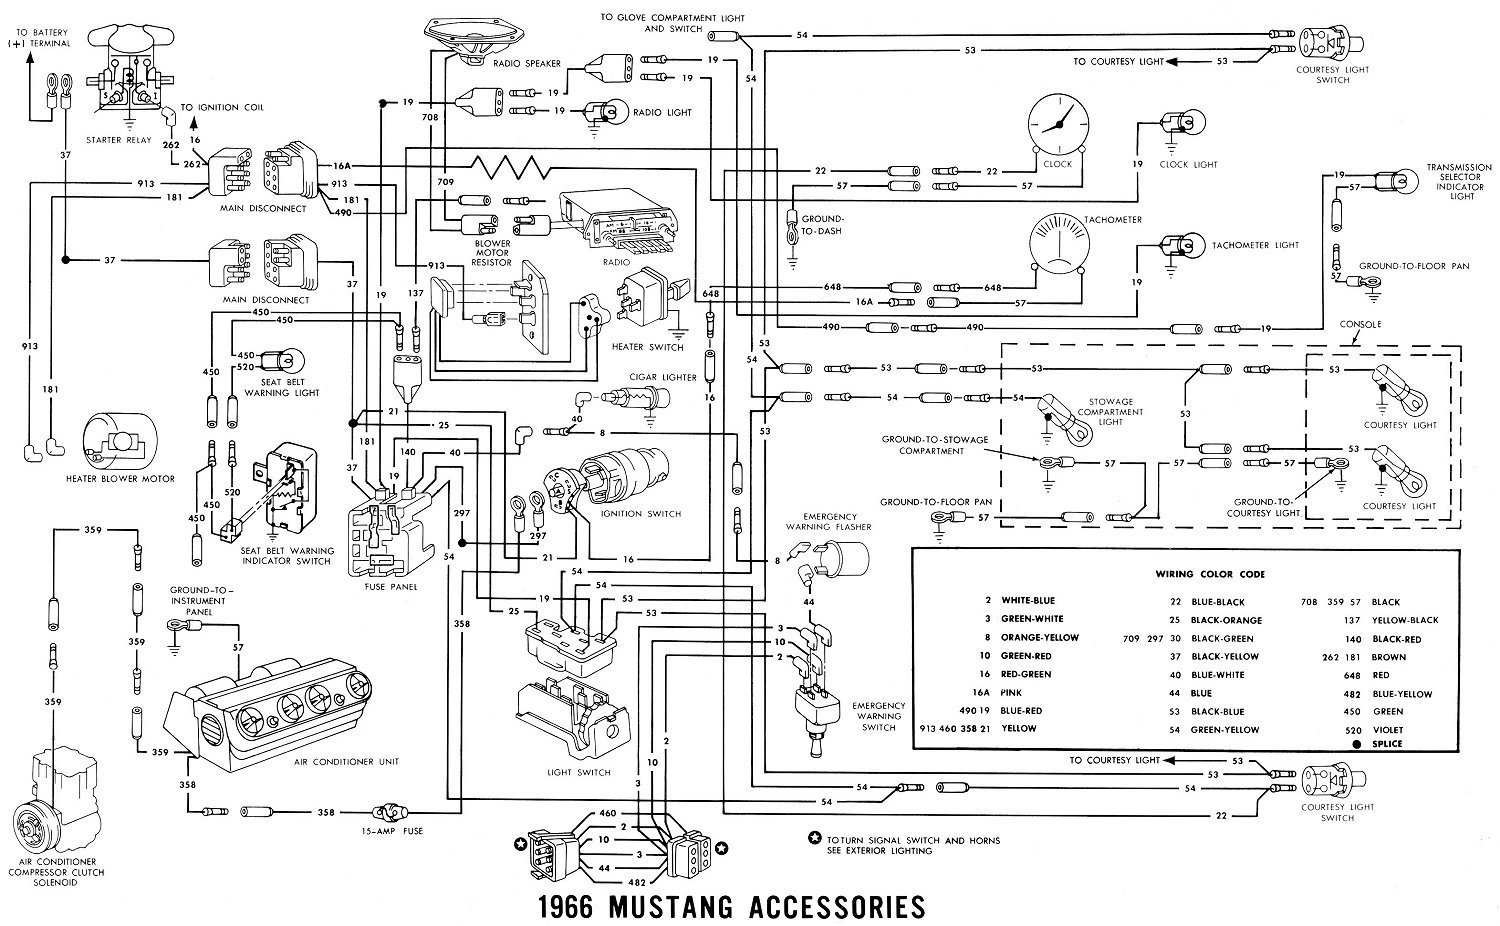 [DIAGRAM] Tail Light Wiring Diagram The Mustang Source